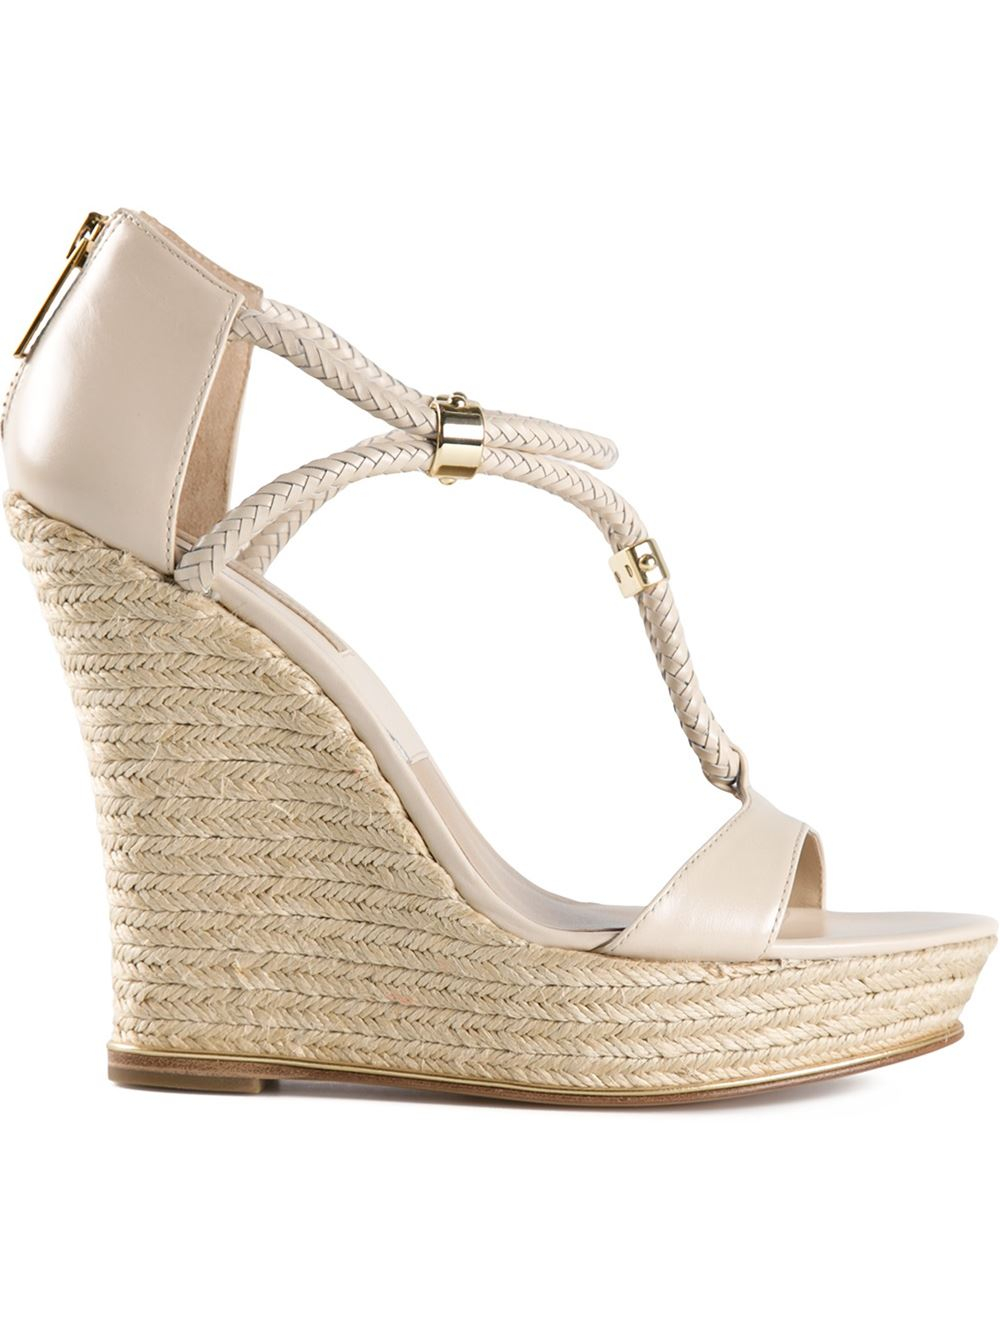 kors by michael kors 39 sherie 39 wedge espadrilles in beige nude neutrals lyst. Black Bedroom Furniture Sets. Home Design Ideas